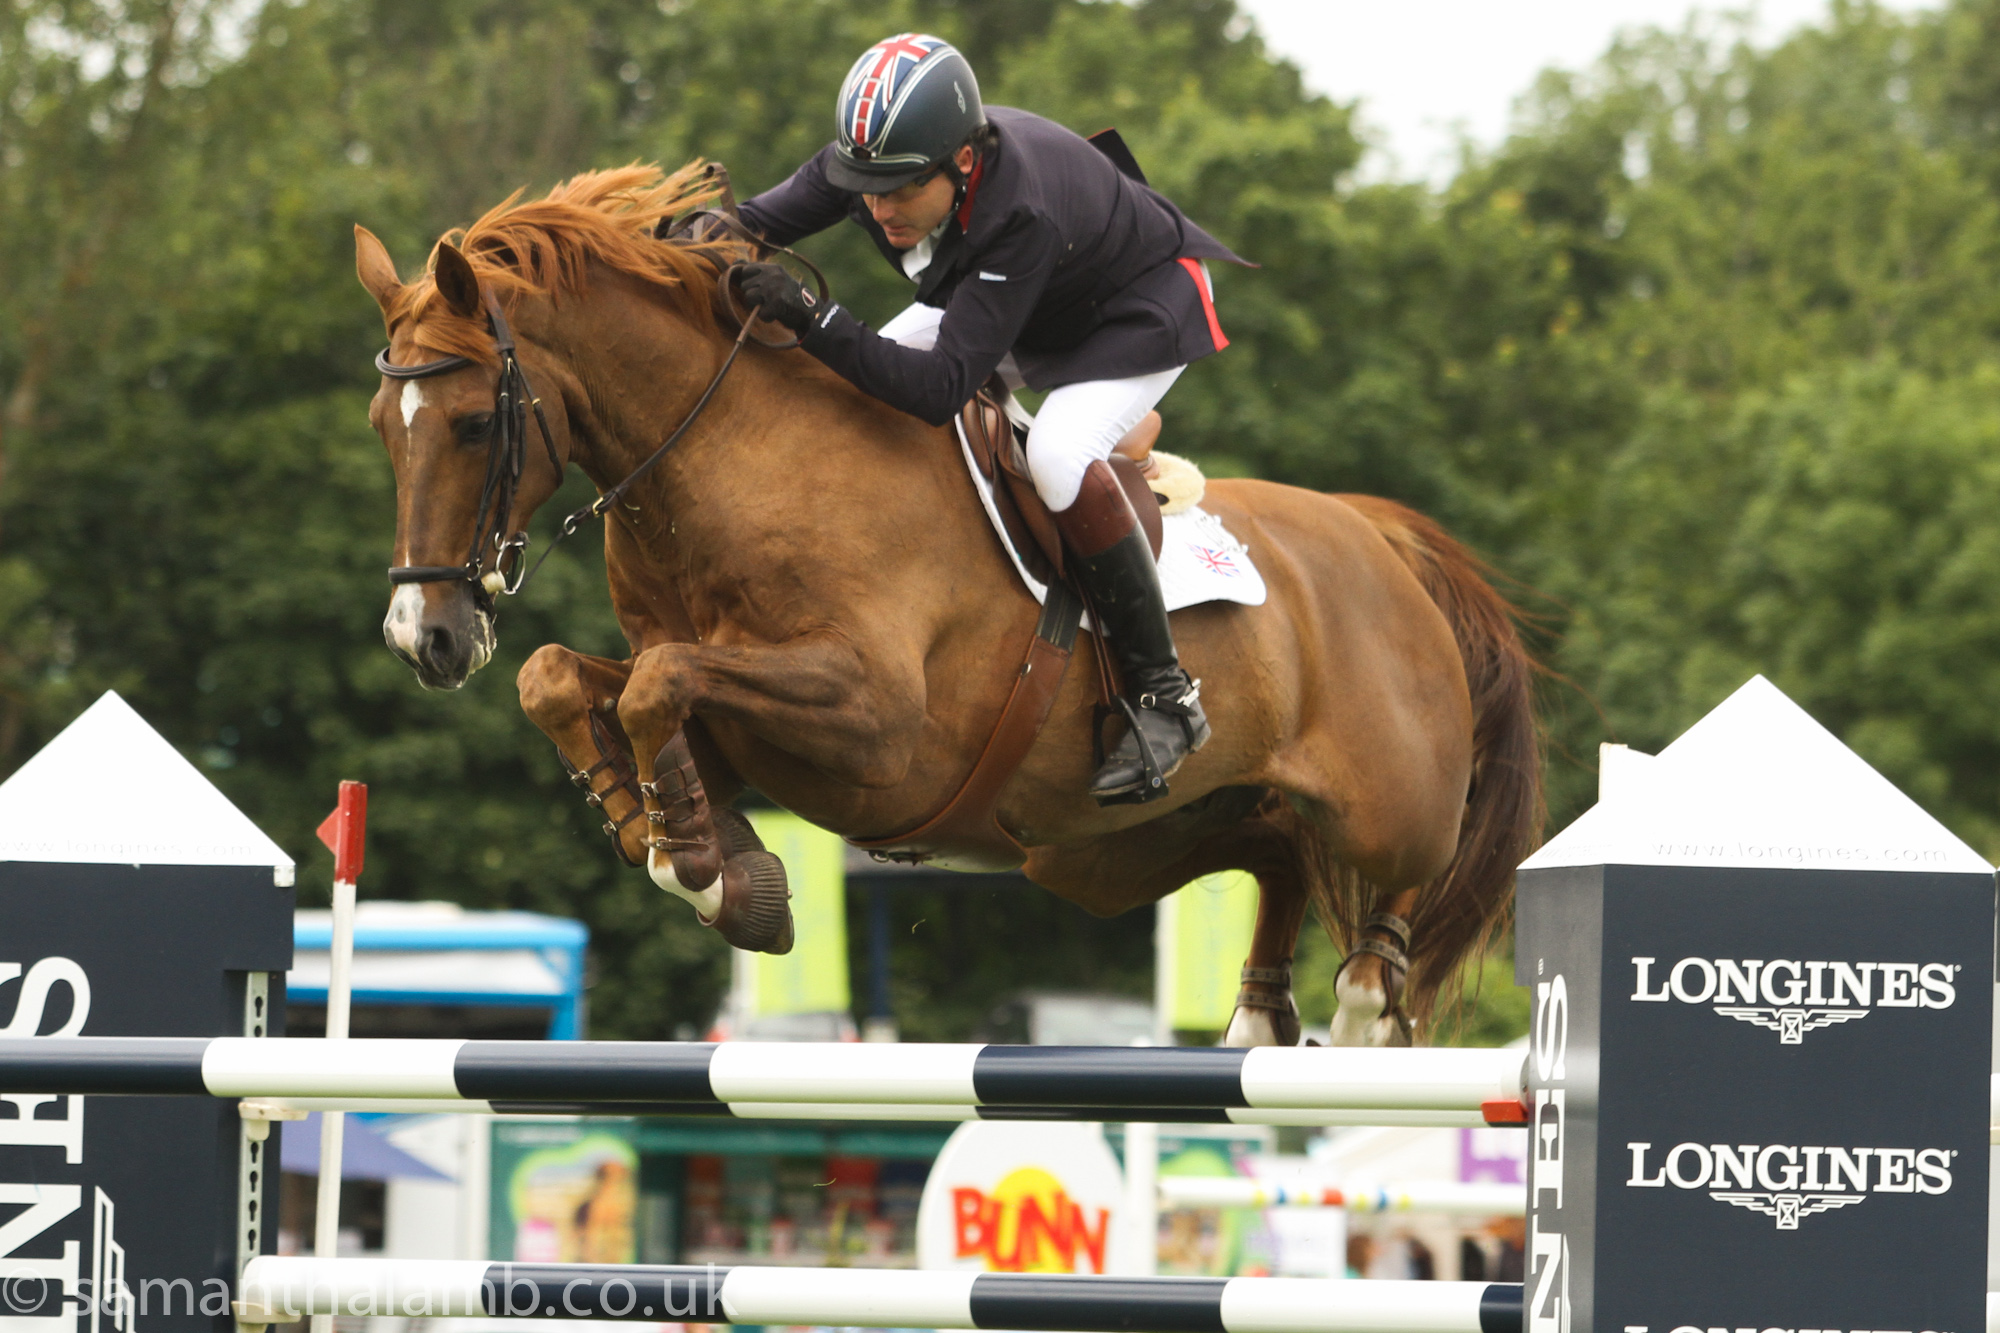 Longines Royal International Horse Show, image Samantha Lamb